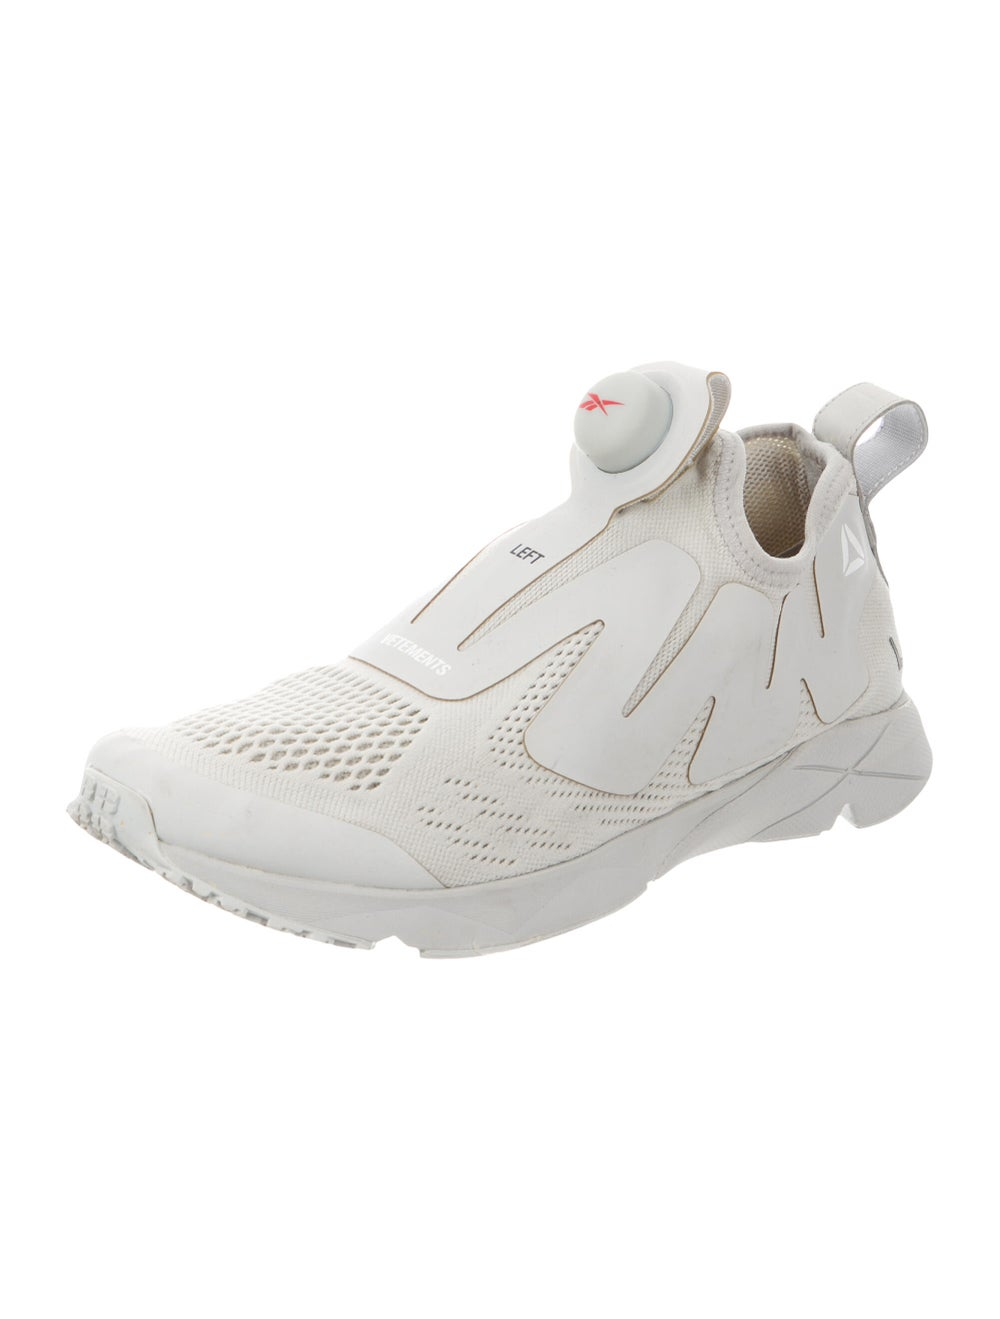 Vetements x Reebok Pump Supreme Sneakers Grey - image 2